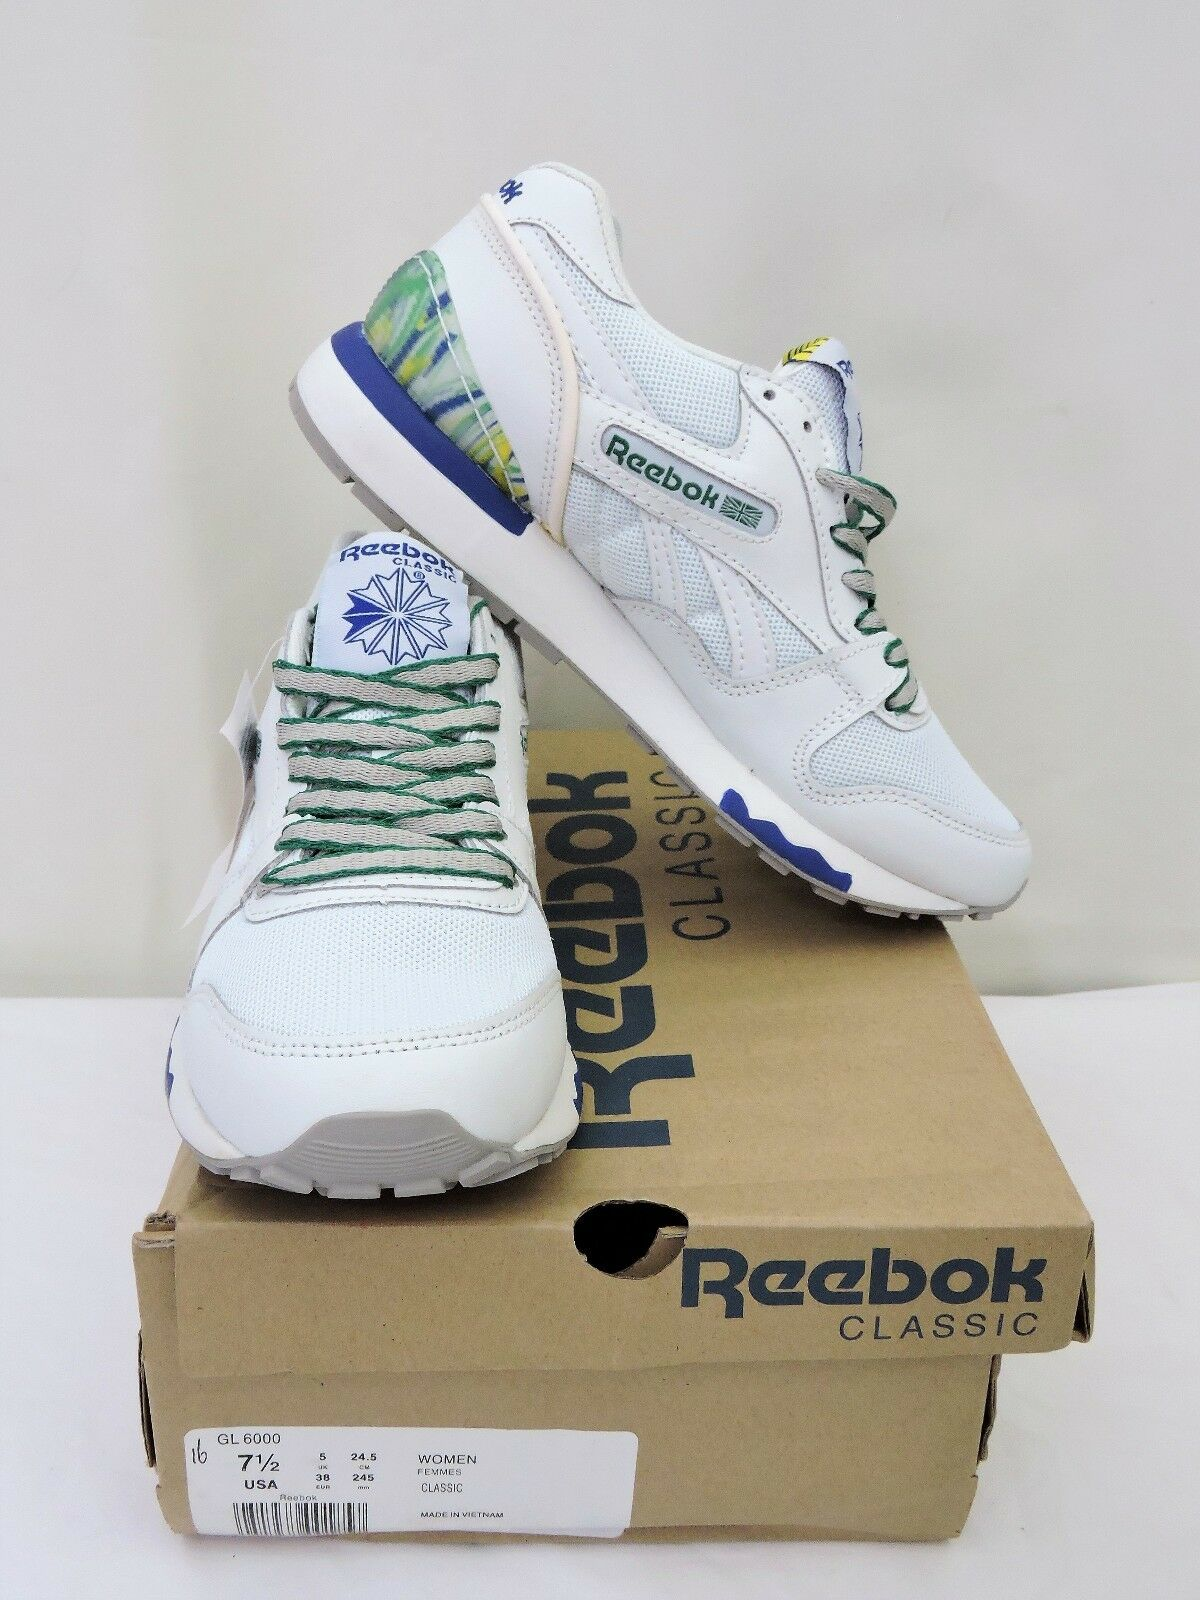 Womens Reebok Classic GL 6000 Sz 7.5 Ladies Gym Running Athletic Trainers Shoes